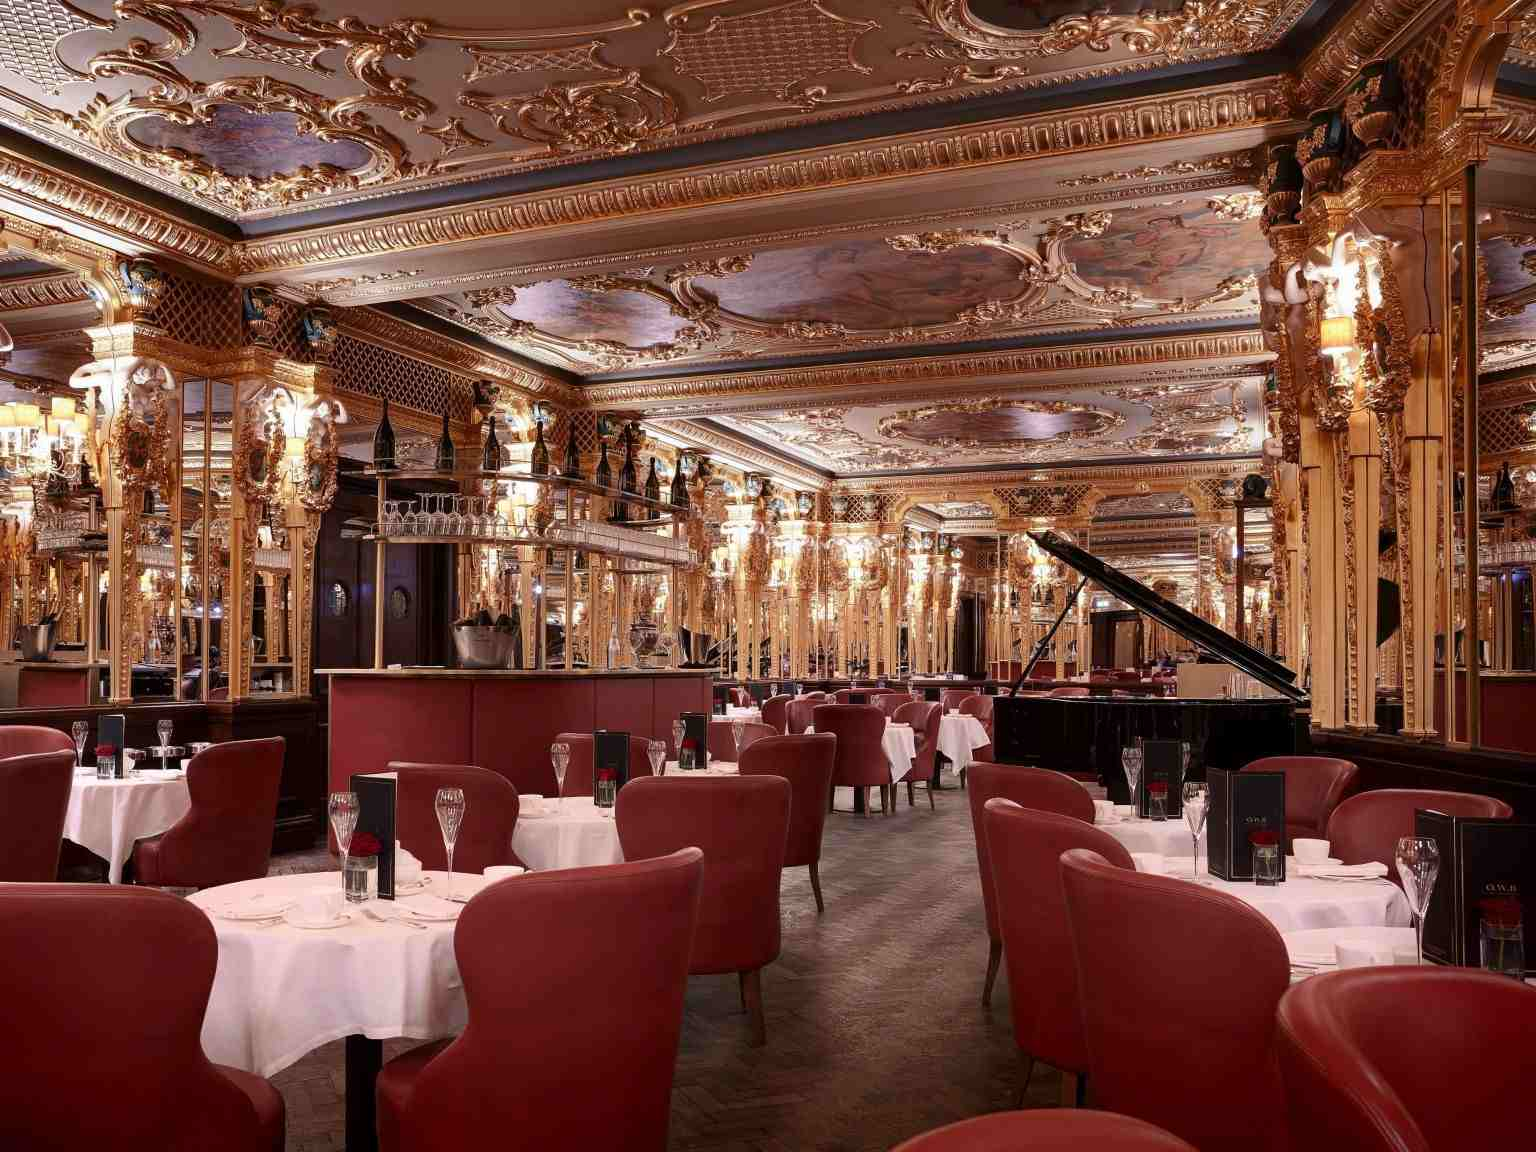 View of tables, chairs, and piano at the Oscar Wilde Lounge inside the Hotel Cafe Royal/